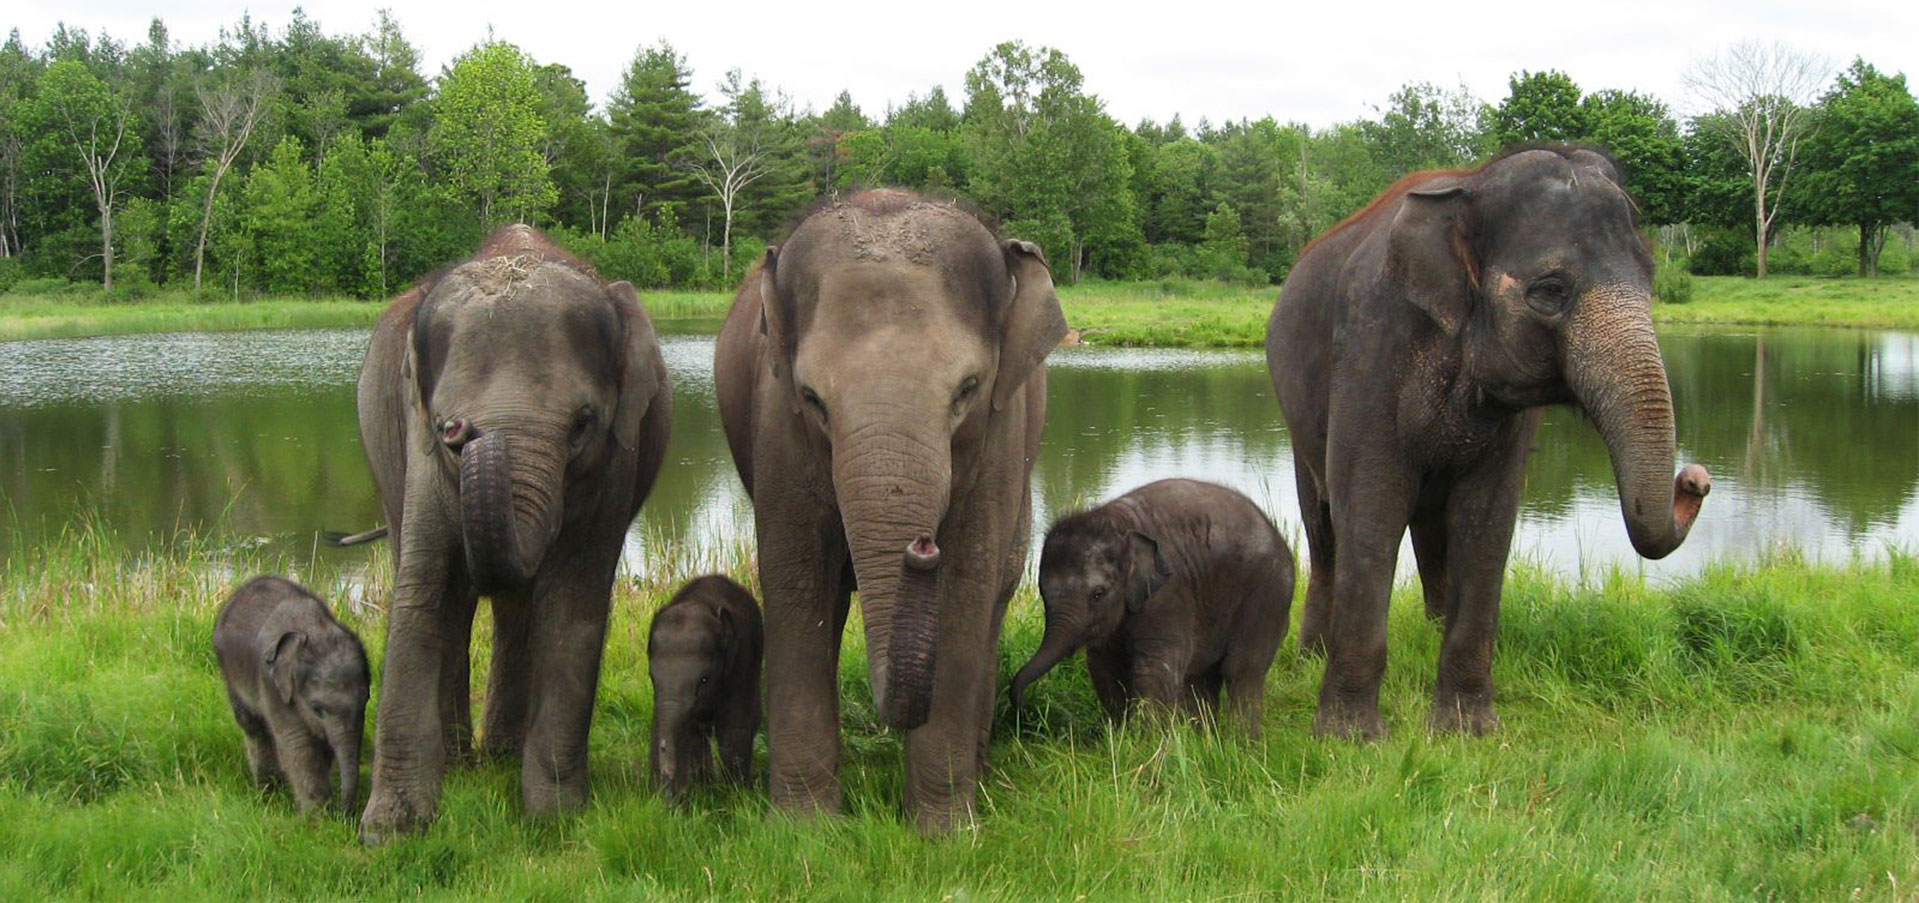 elephants and their young in front of water